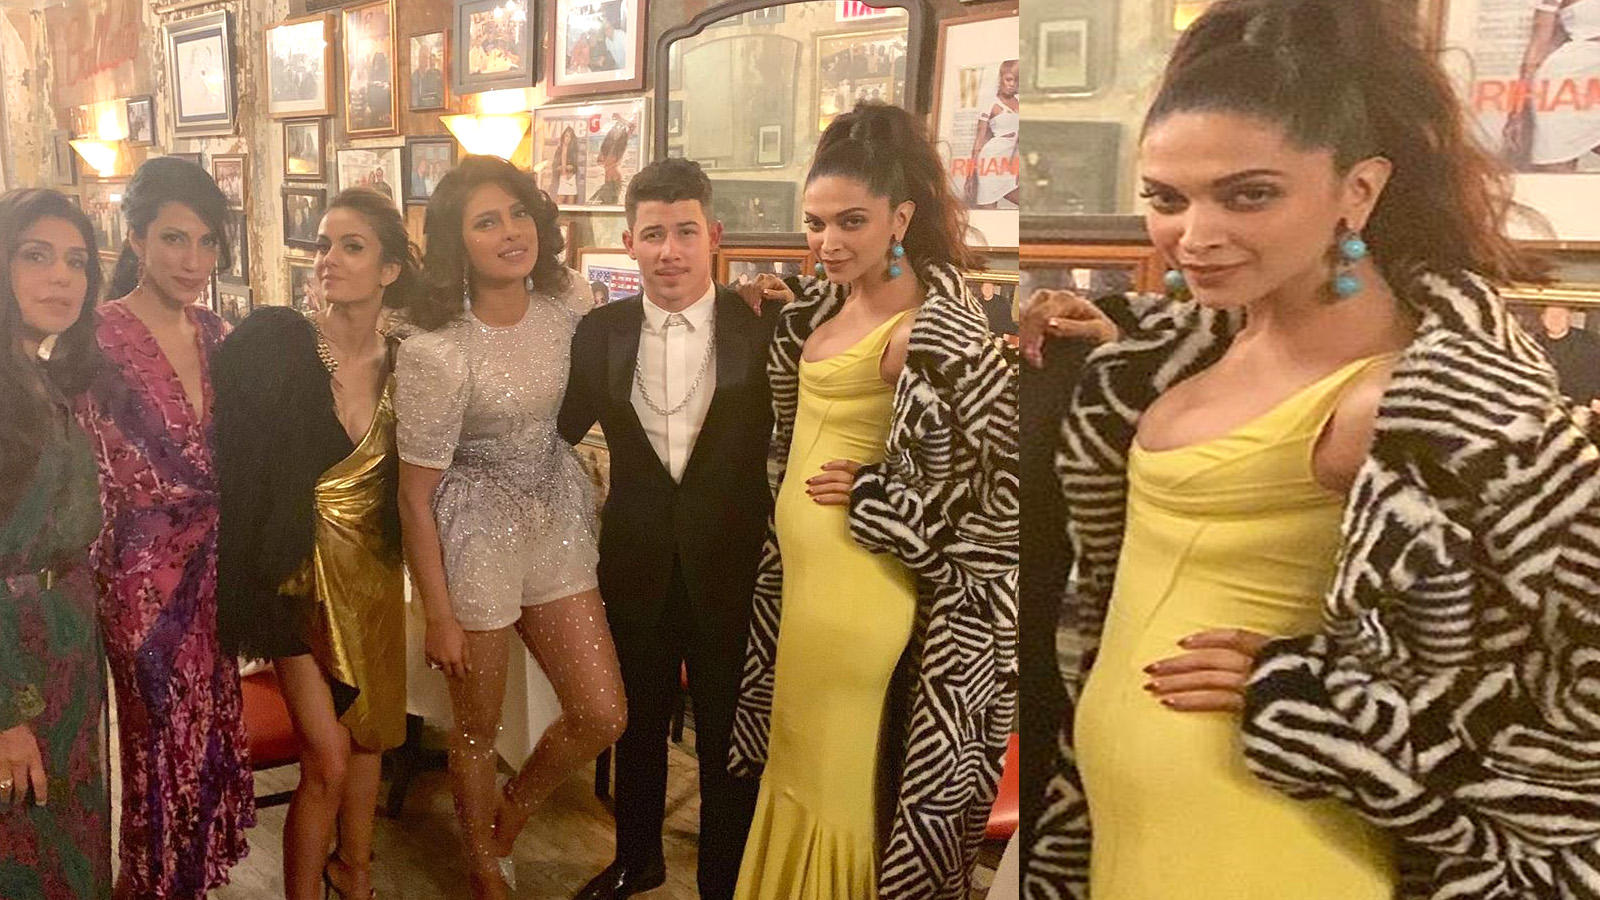 Is Deepika Padukone pregnant? Fans point out baby bump in new picture with Priyanka Chopra Jonas